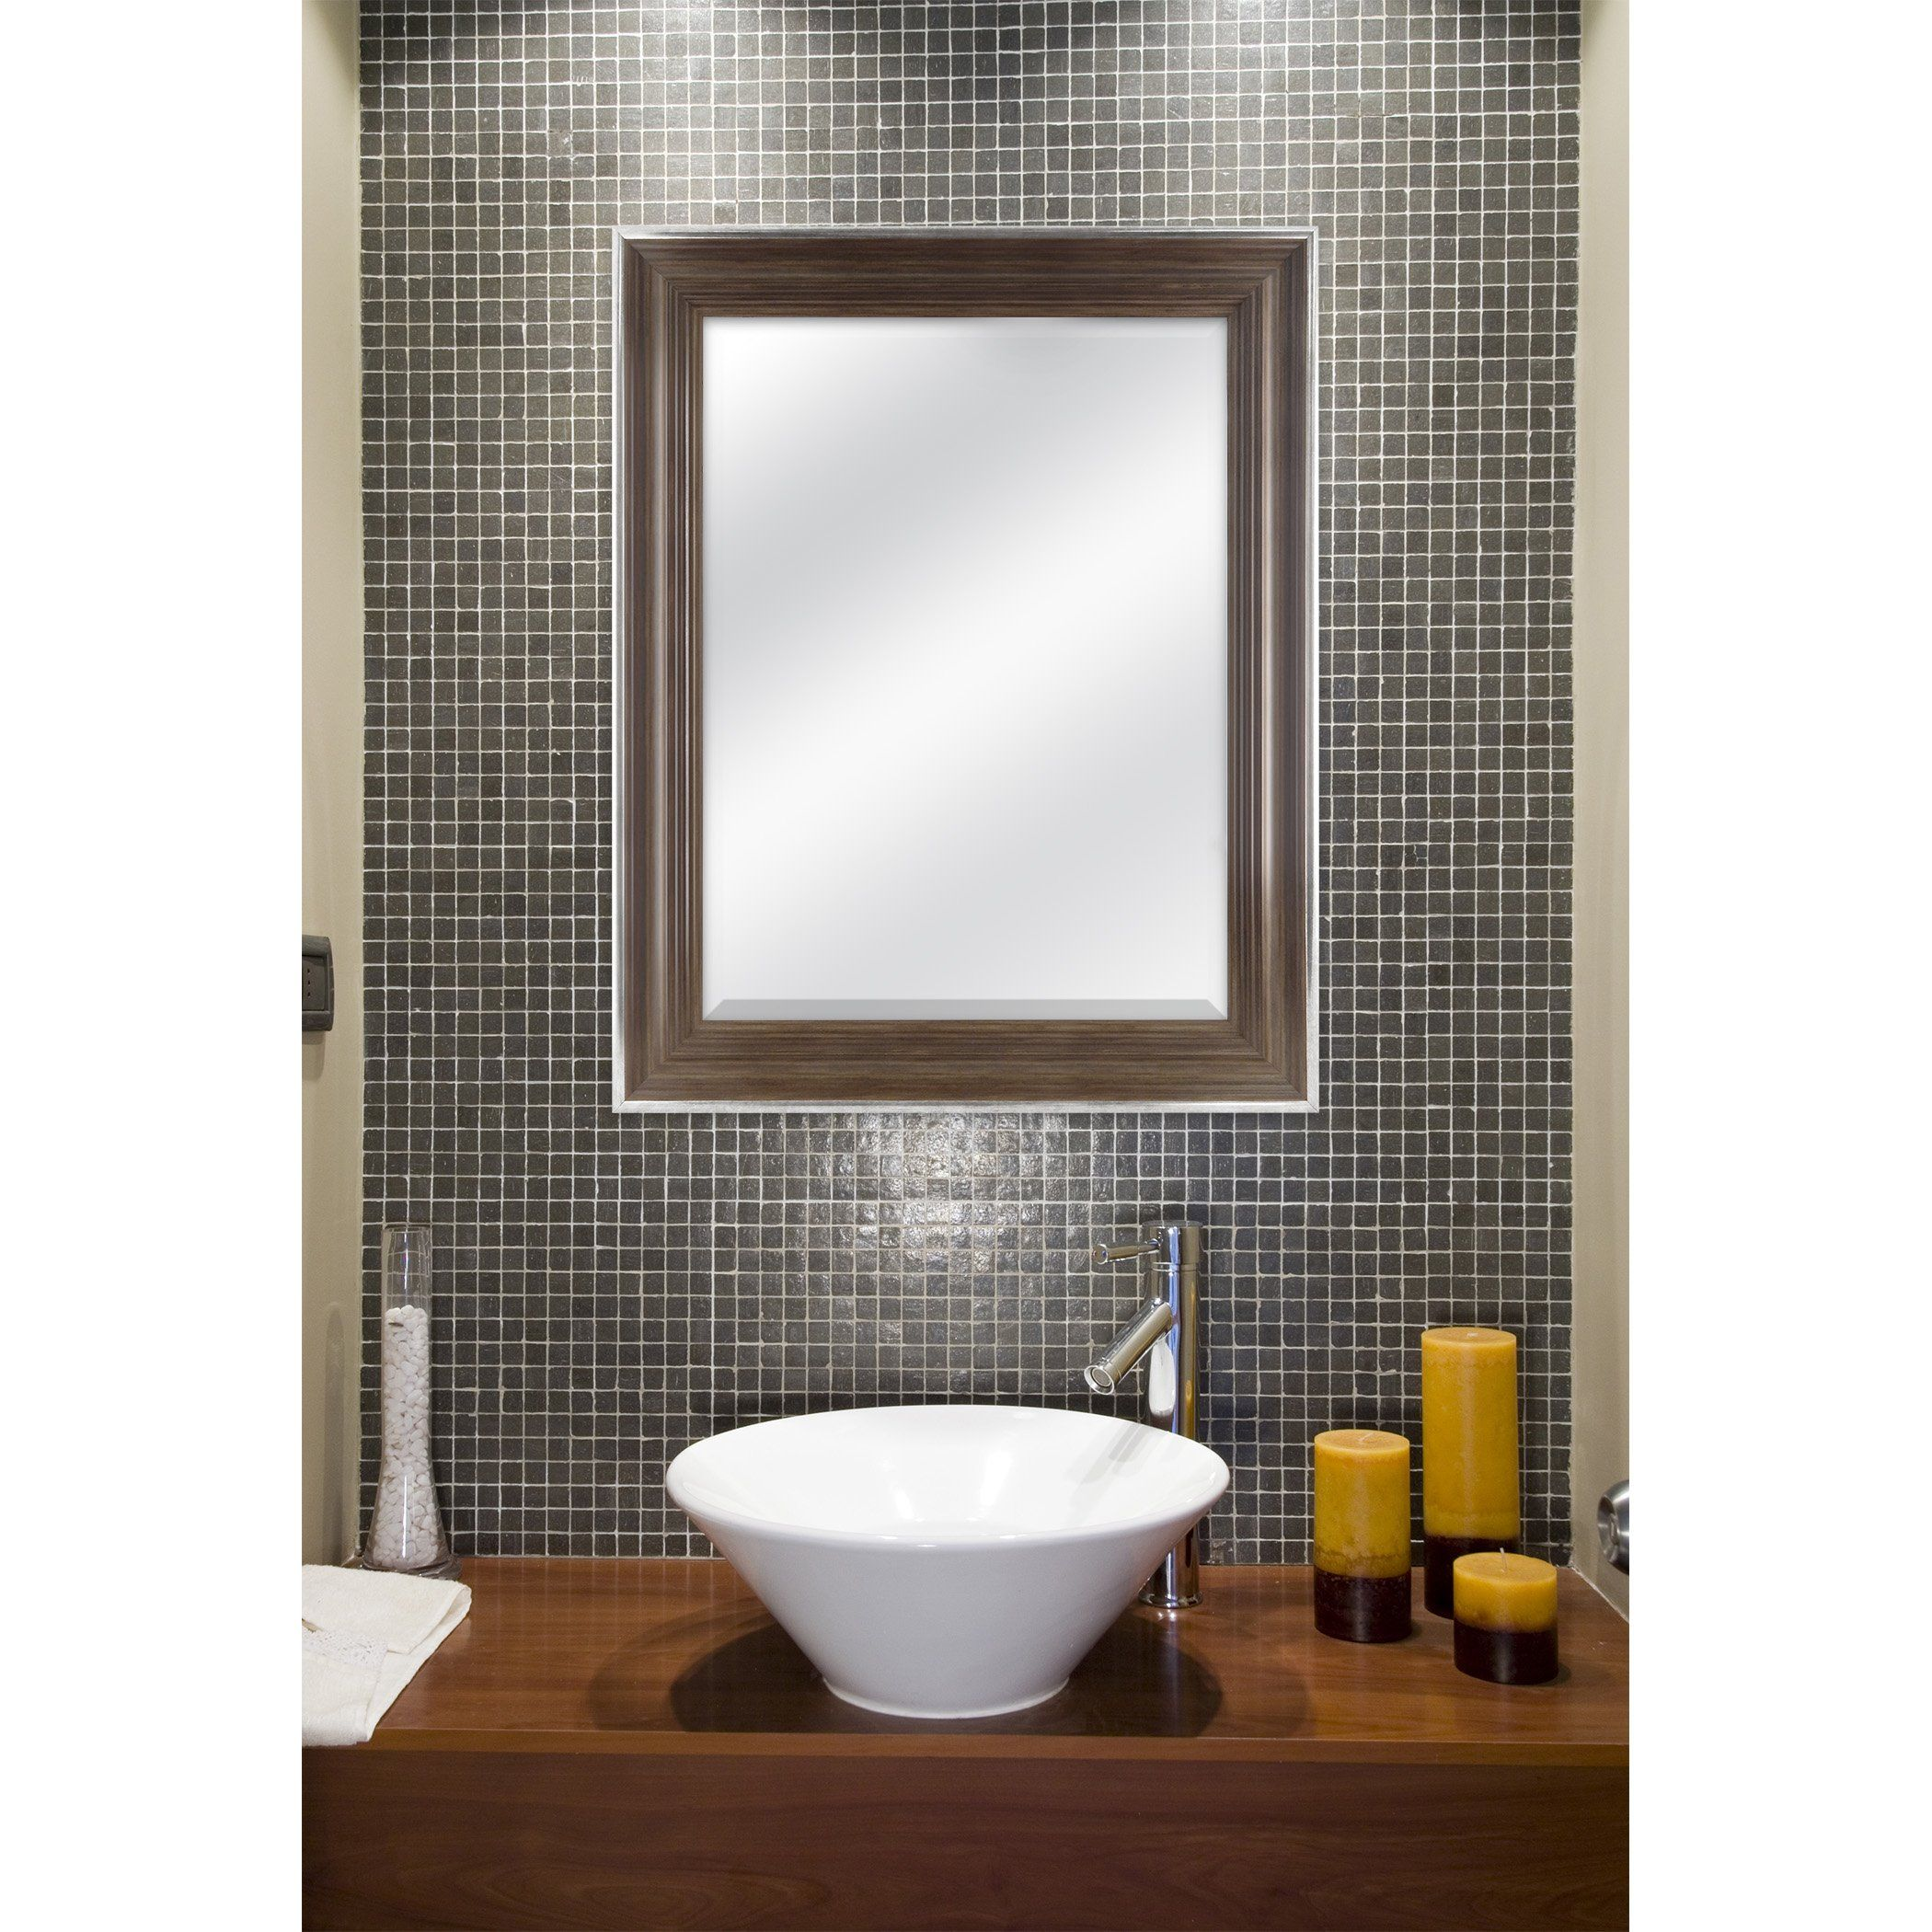 Mcs 18x24 Inch Scoop Mirror 23 5x29 5 Inch Overall Size Chestnut 20543 Check Out This Great Product This Is An Affiliate Link Mirror Chestnut Dimensions [ 2100 x 2100 Pixel ]